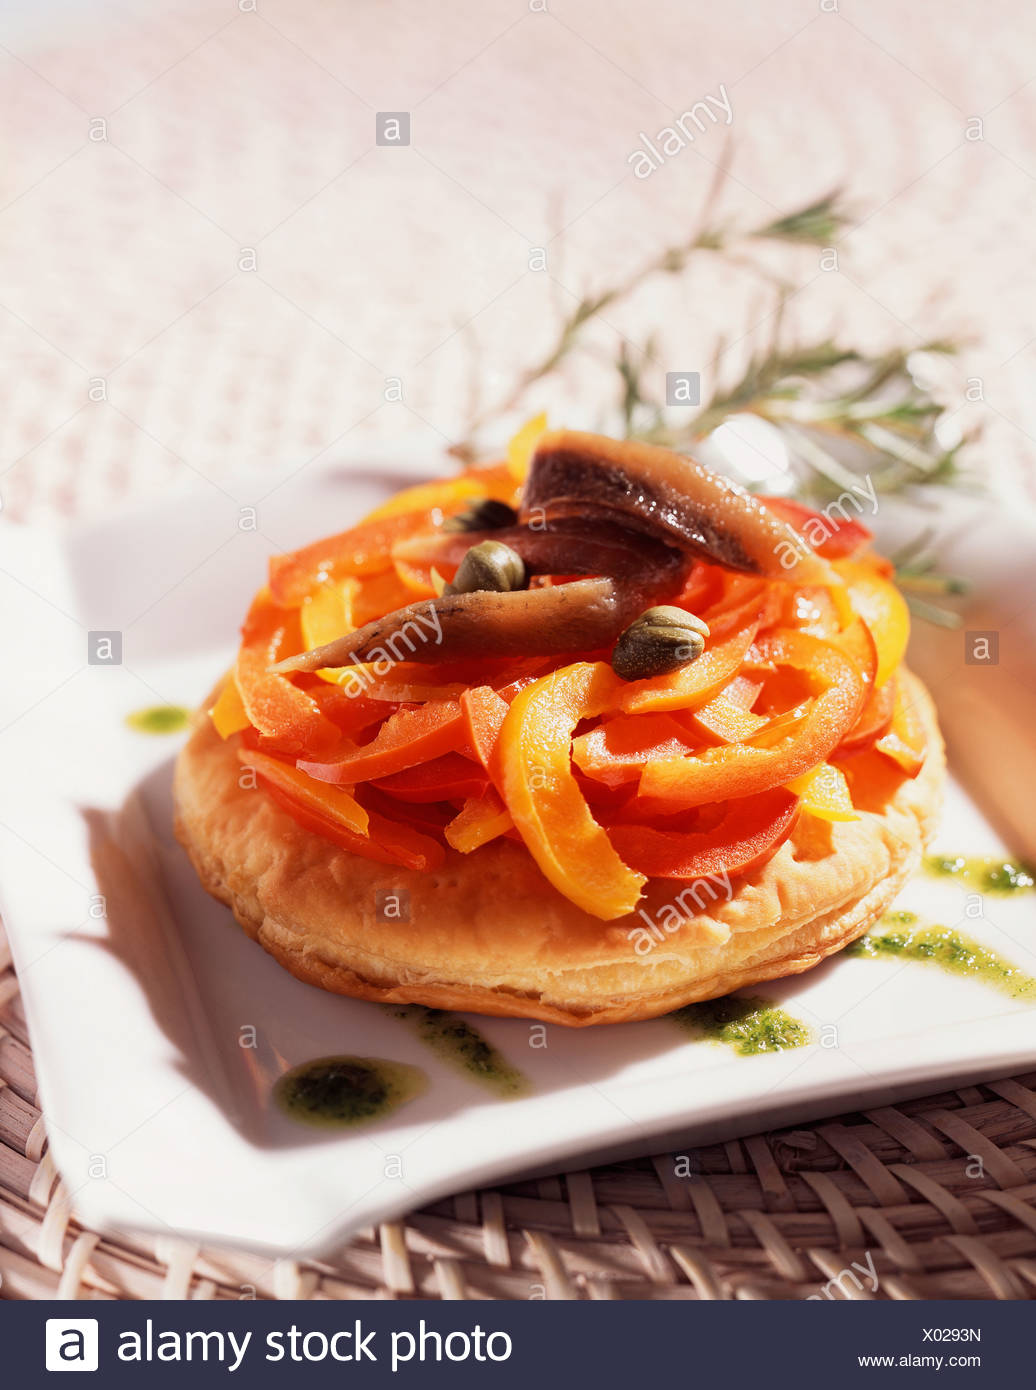 cooking Mixed Peppers on Flaky Pastry - Stock Image